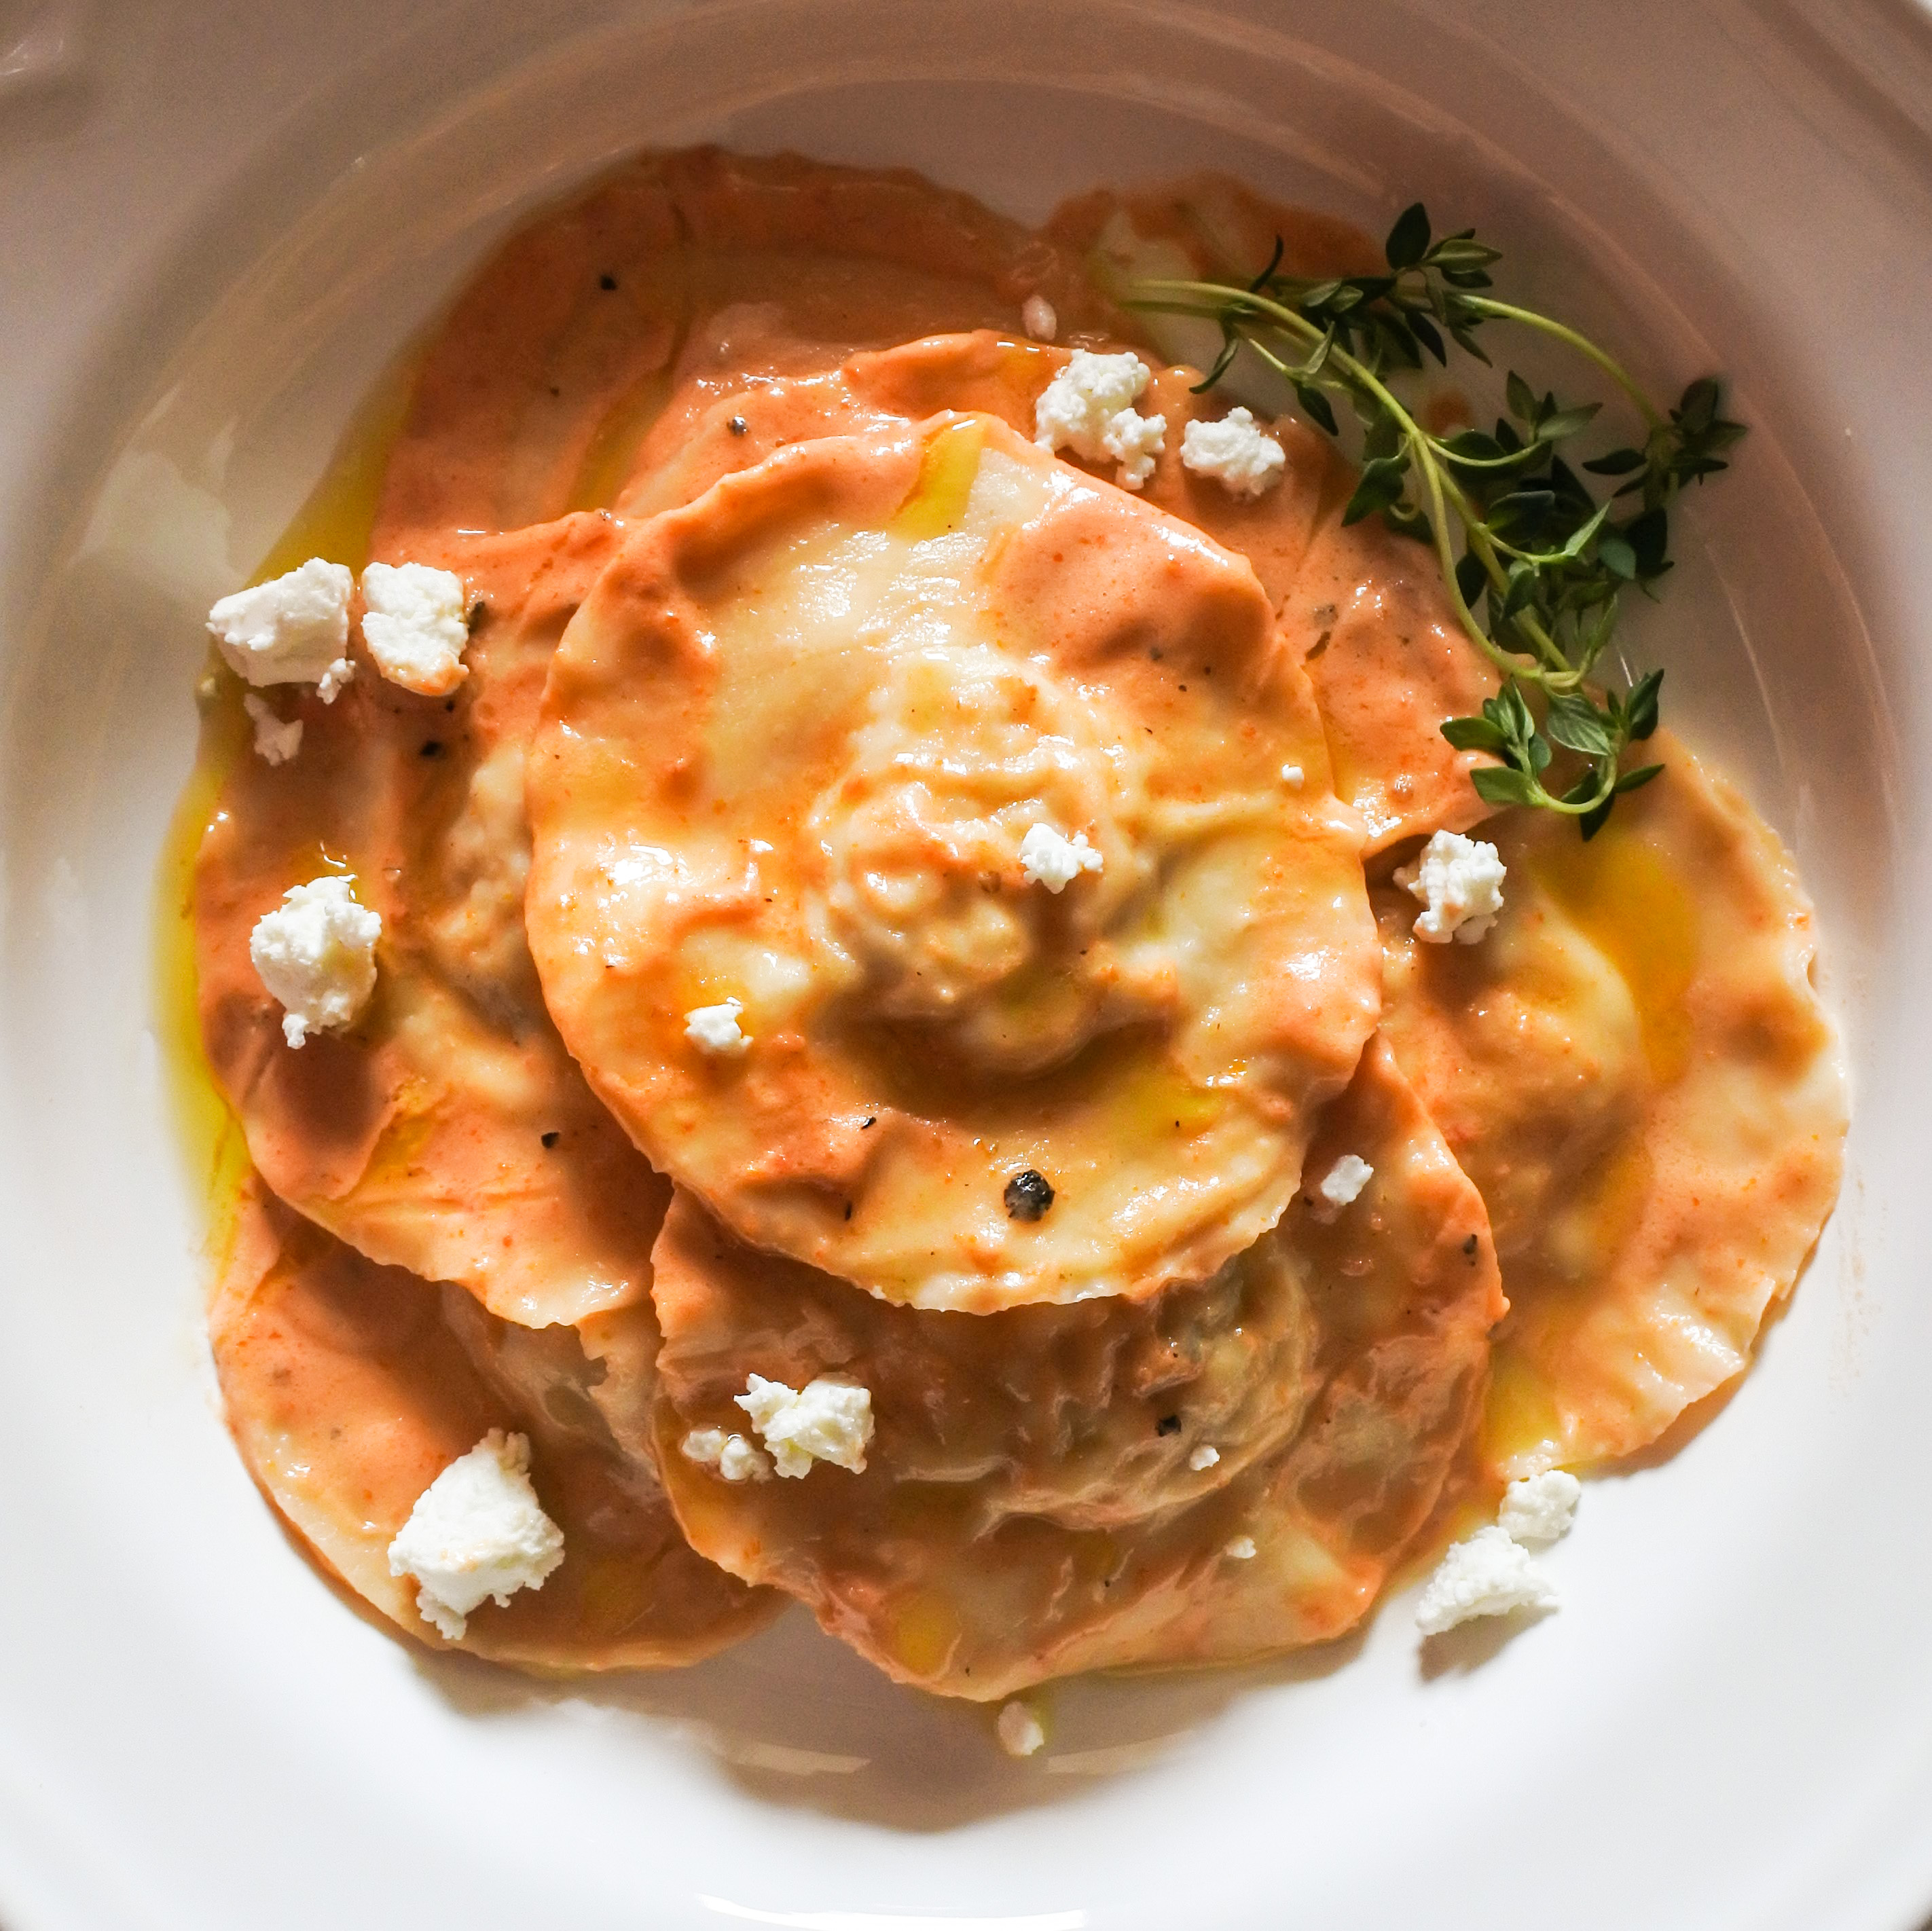 Chicken Ravioli with a Sun Dried Tomato Cream Sauce